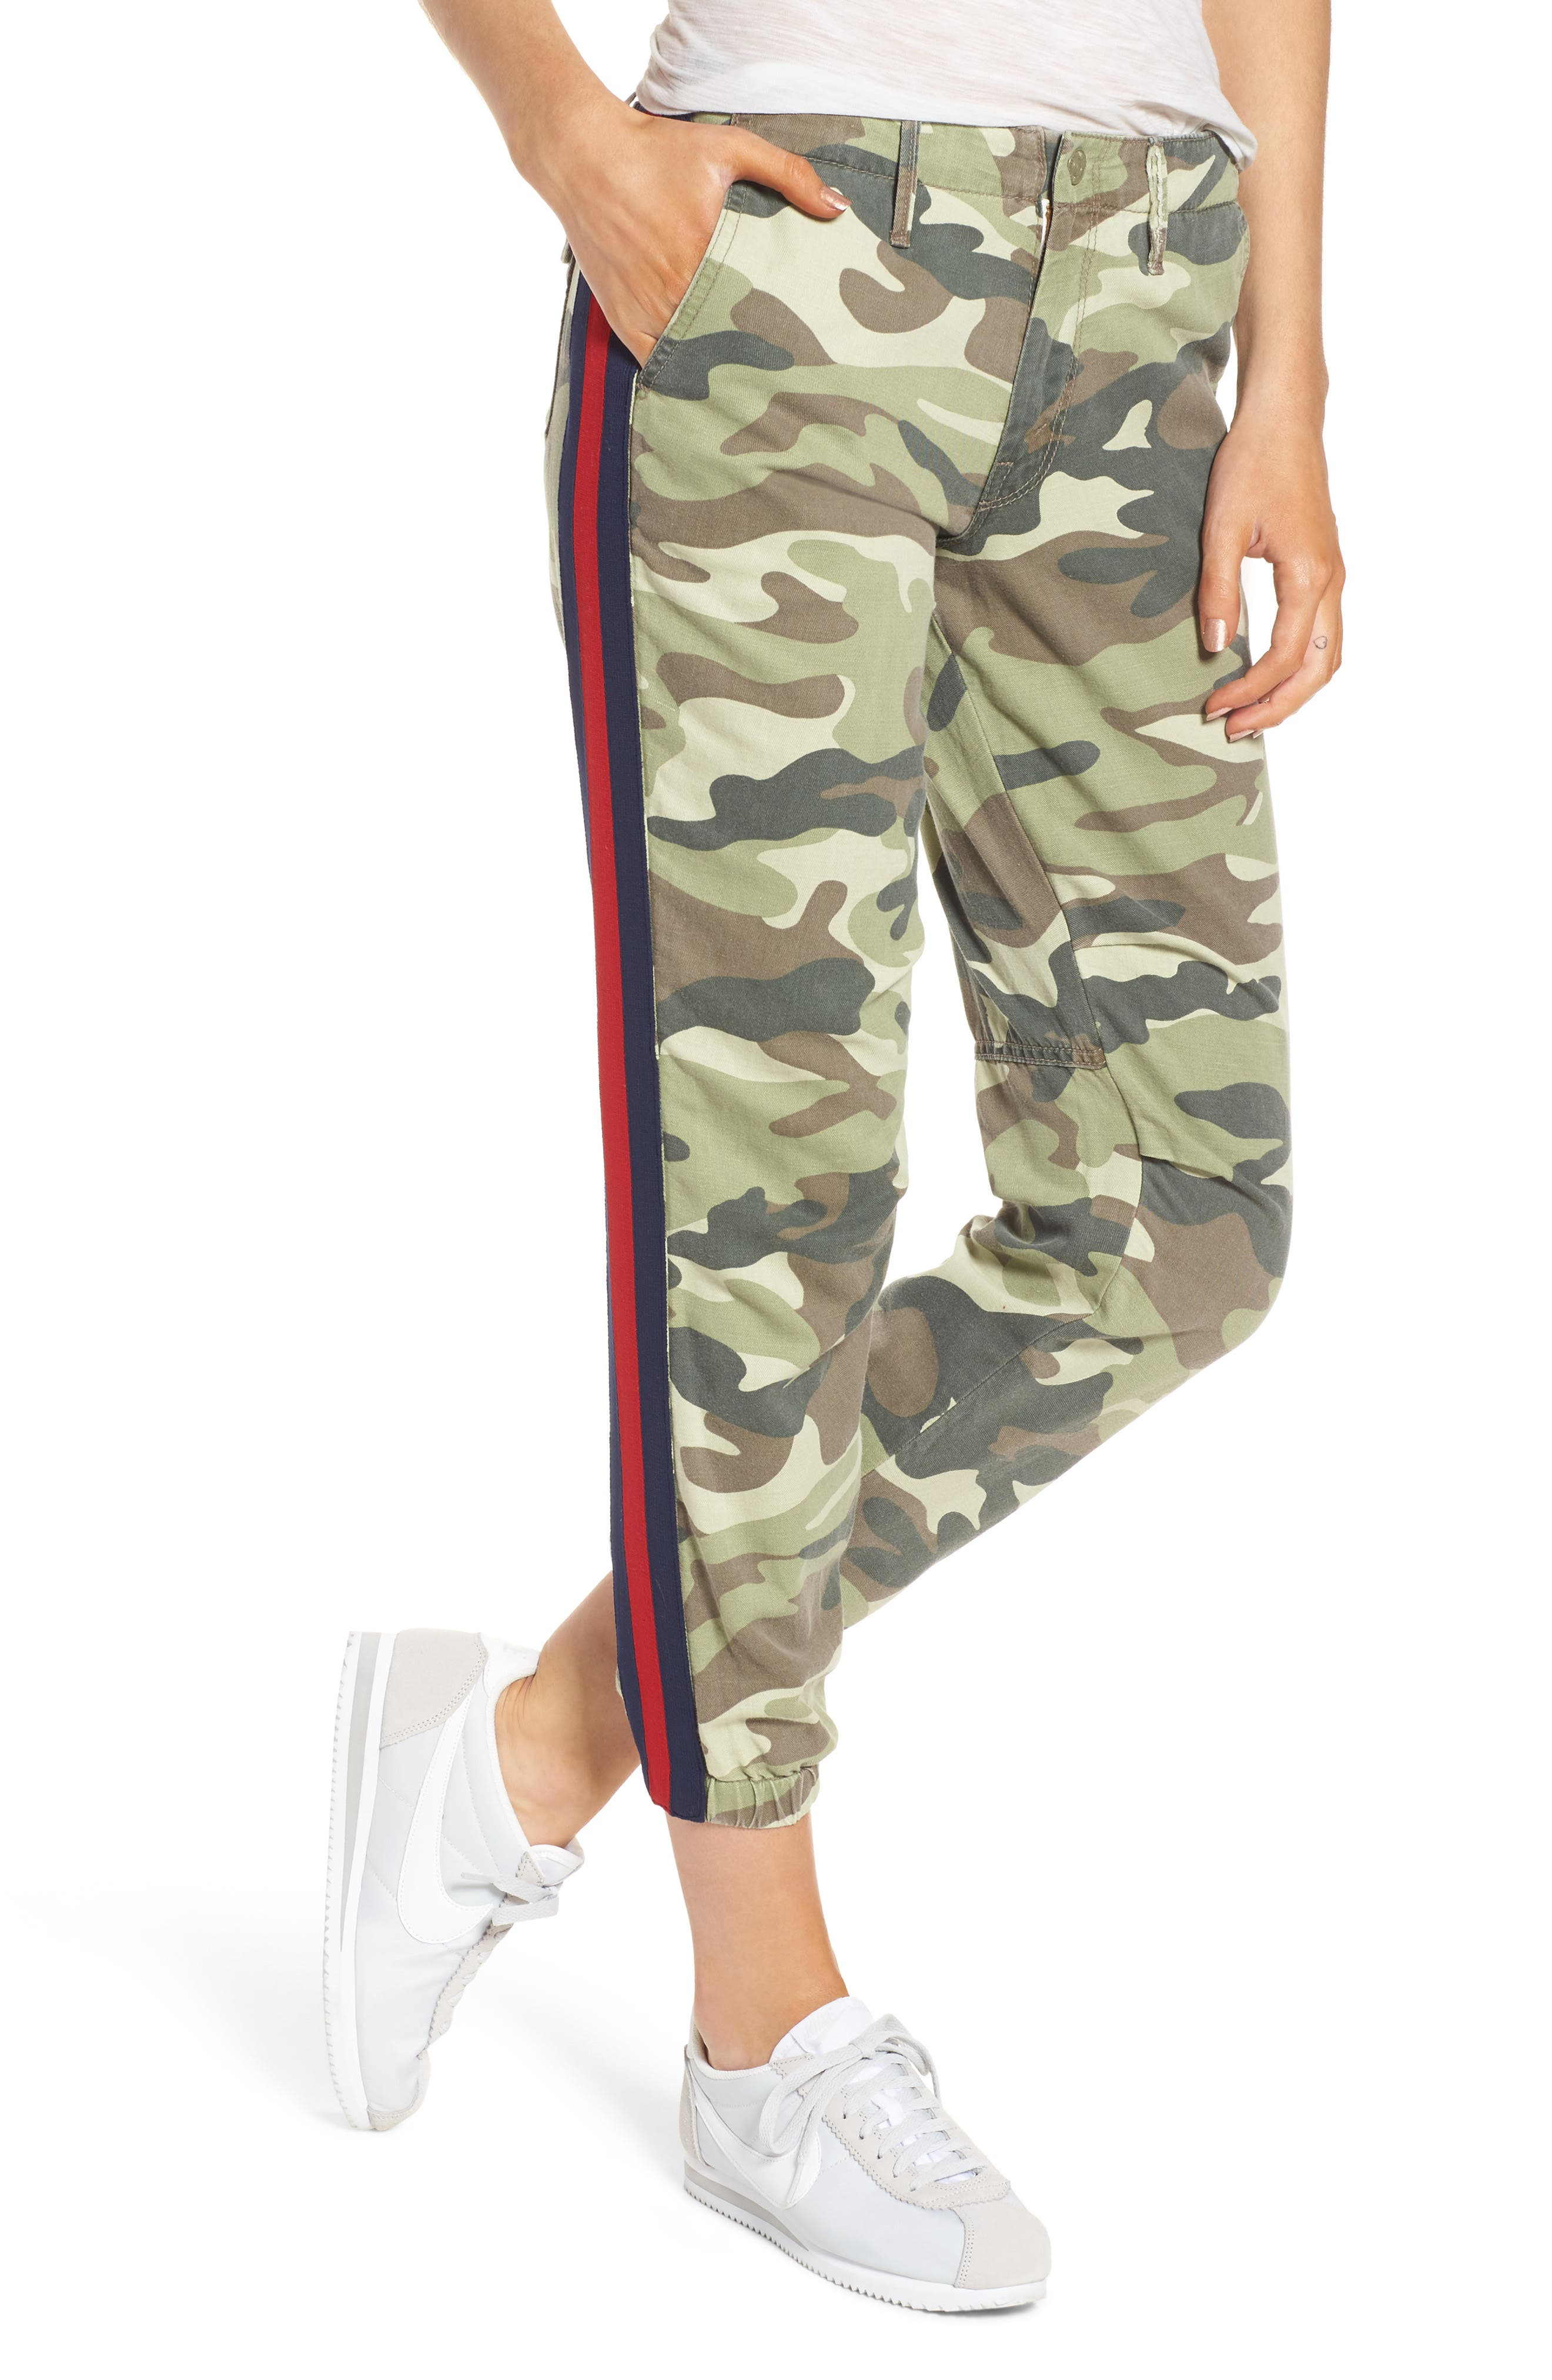 MOTHER The Misfit Crop Pants (Camouflage)